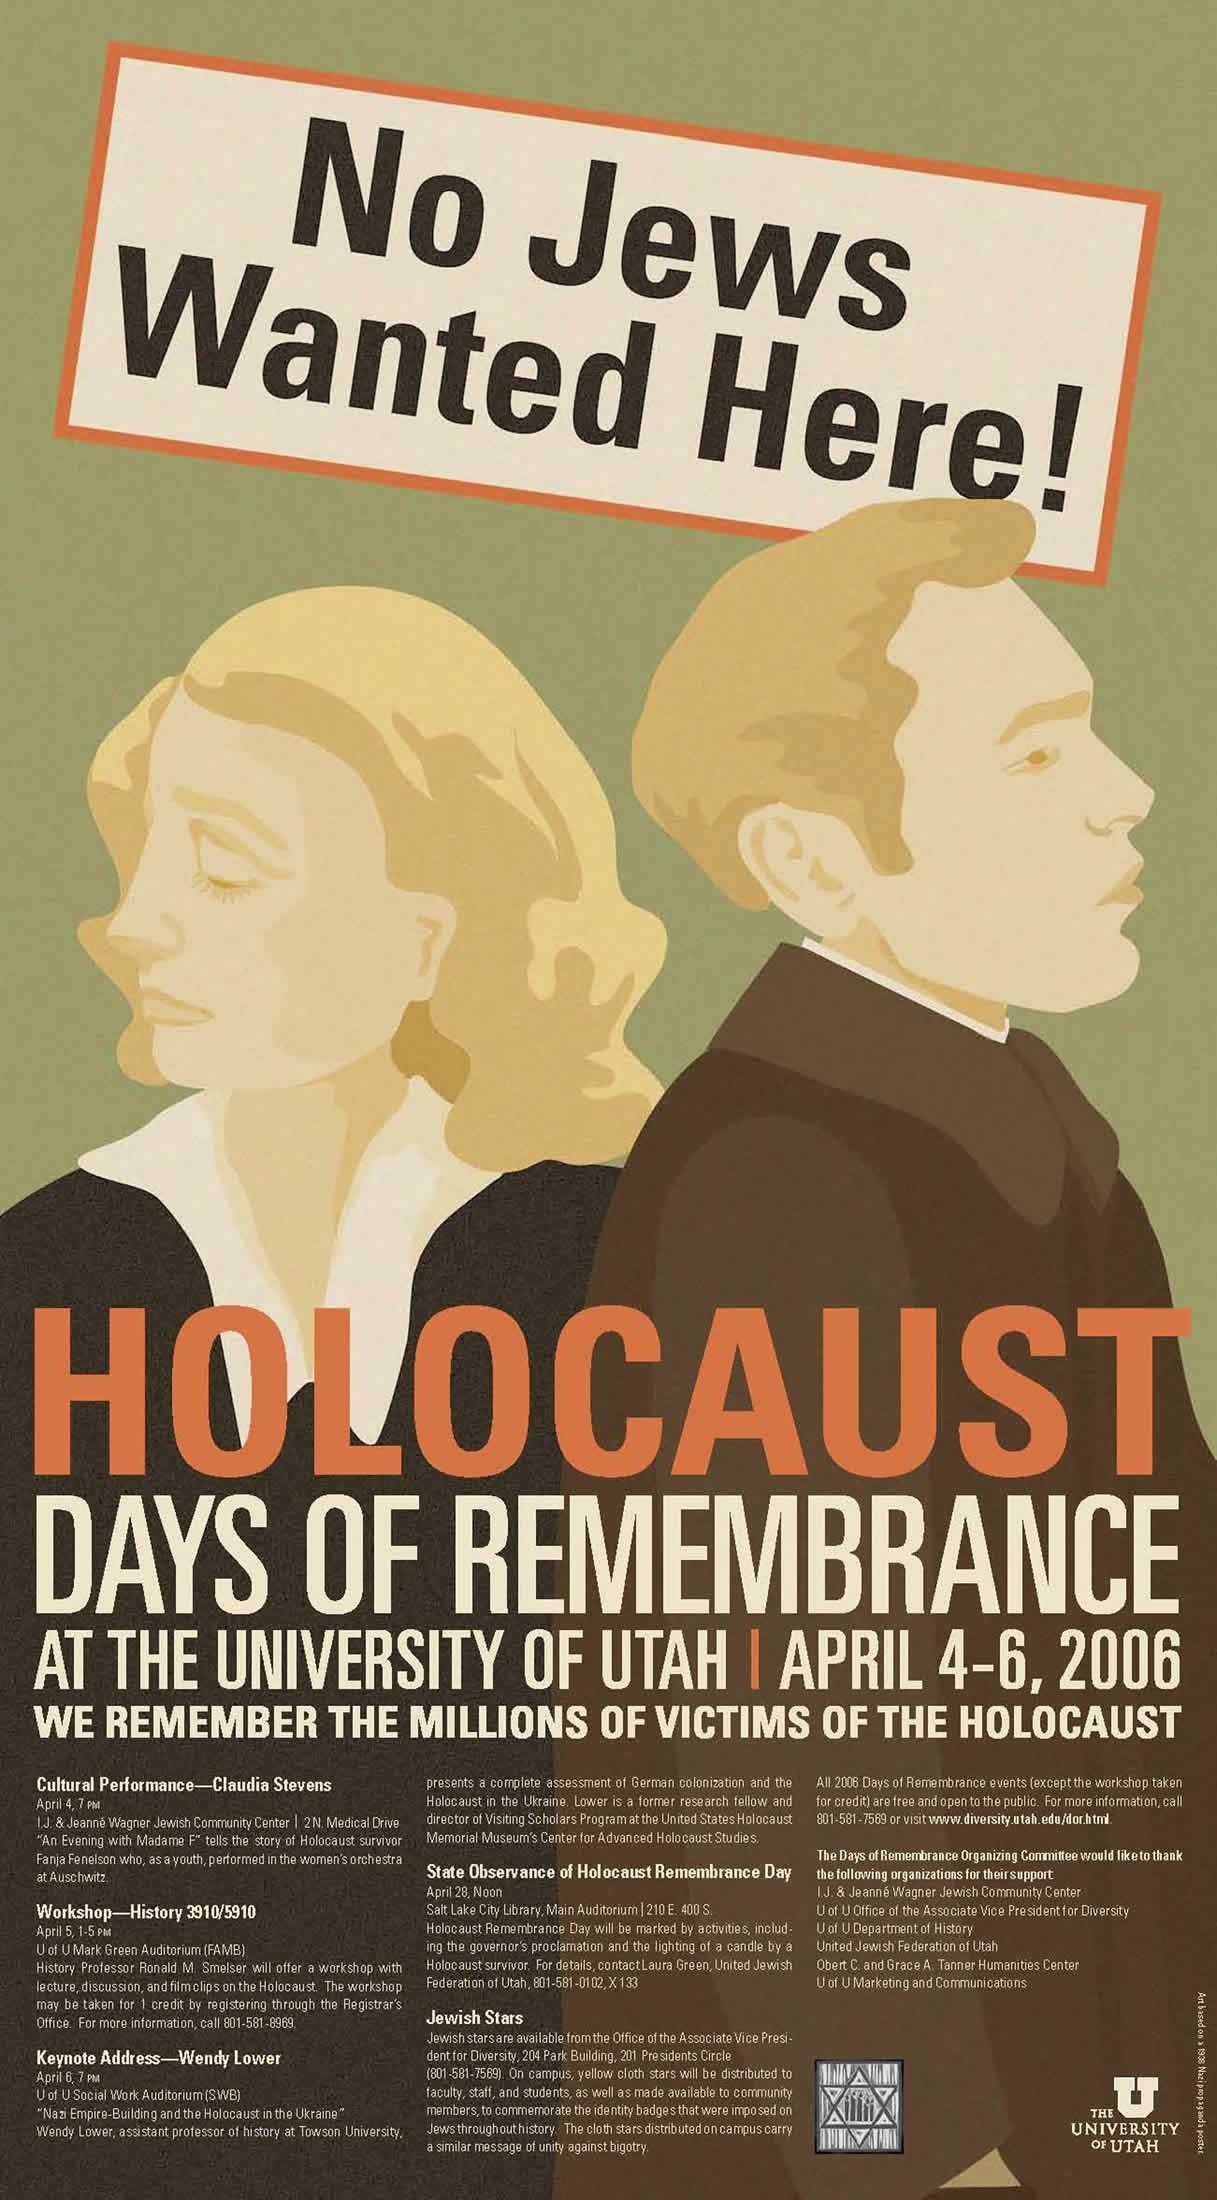 Days of Remembrance poster